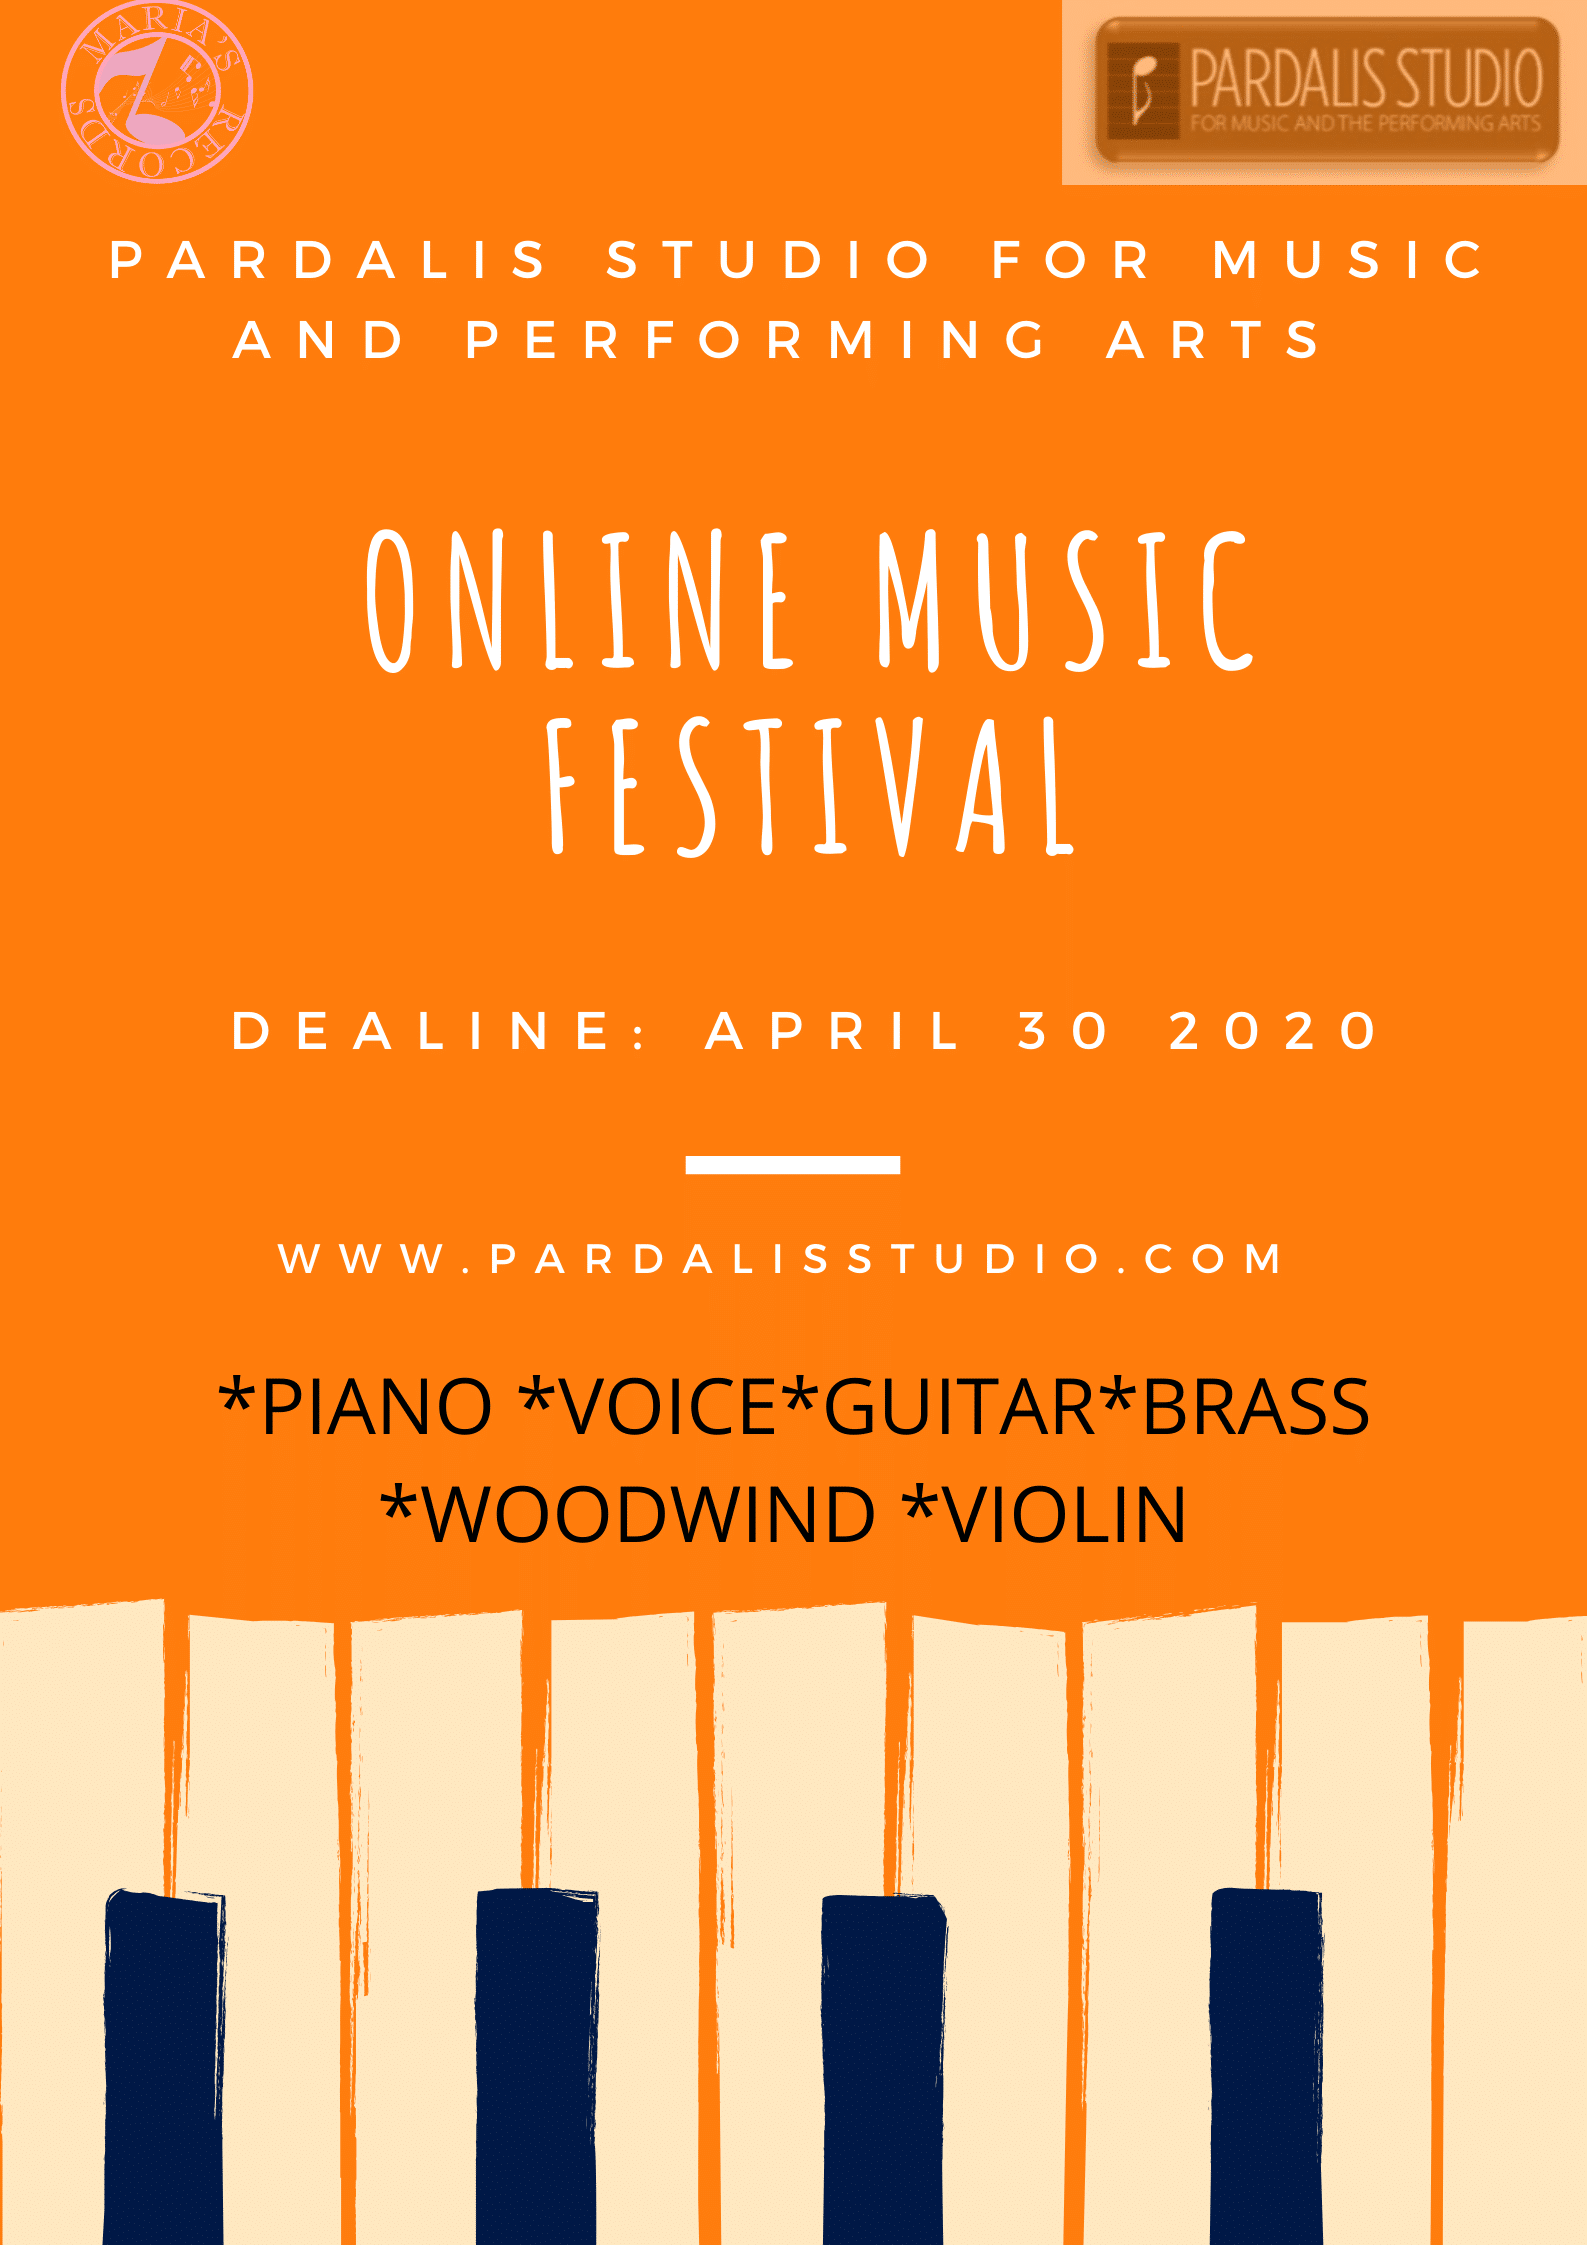 https://pardalisstudio.com/wp-content/uploads/2020/03/Orange-Jazz-Festival-Concert-Poster1.png